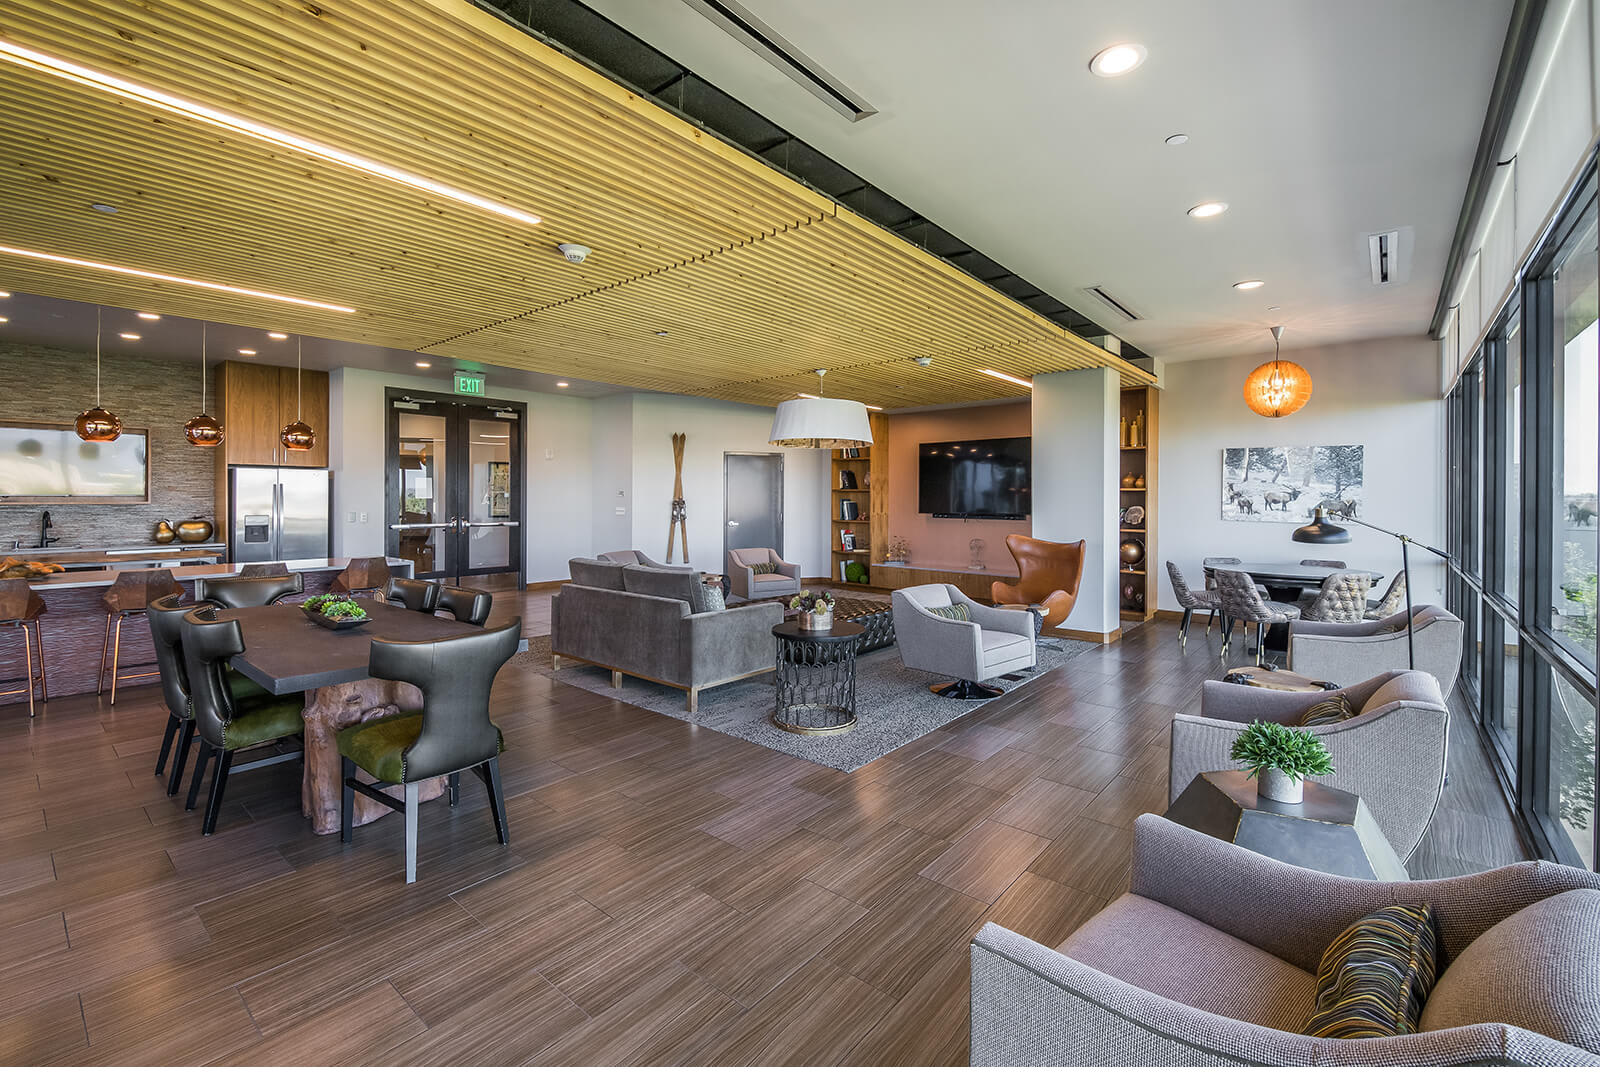 Wi-Fi throughout Common Areas at 1000 Speer by Windsor, 80204, CO